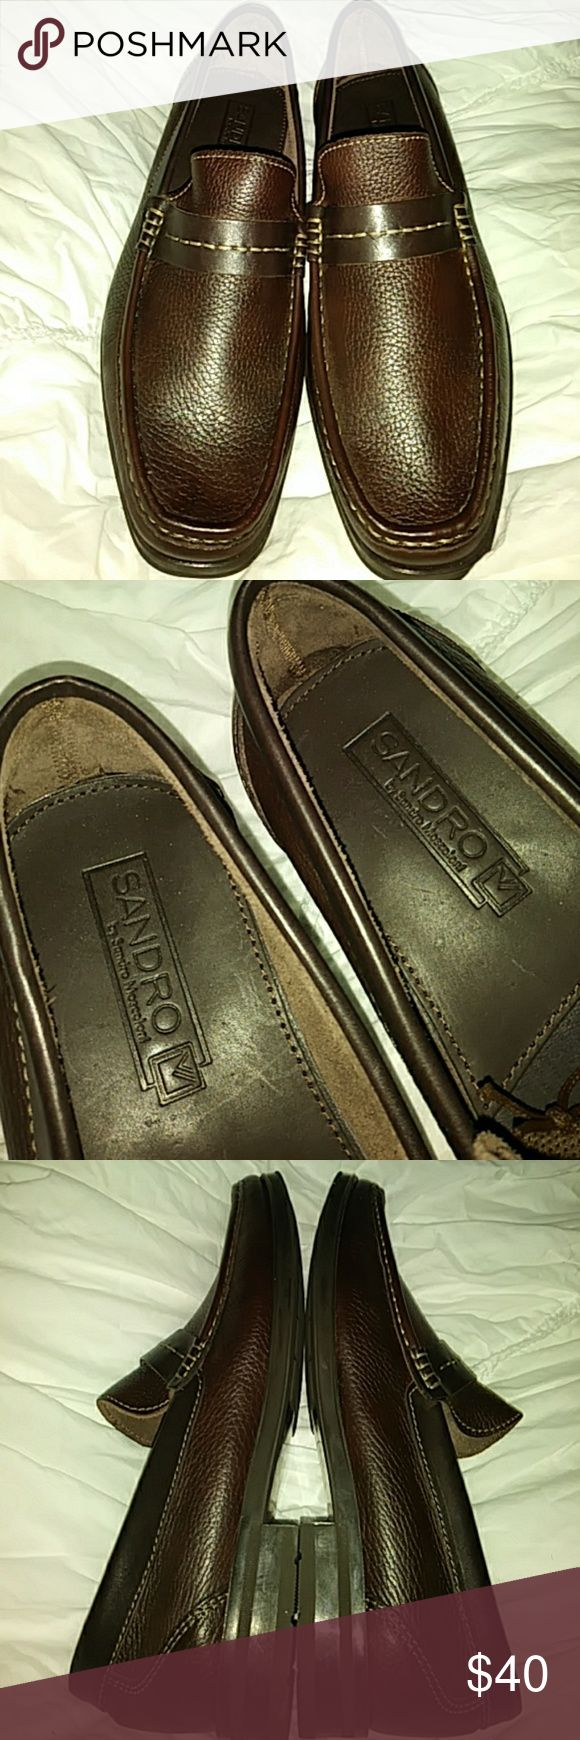 Sandro M brown leather loafers New without box in good clean condition, size 8D Sandro Moscoloni Shoes Loafers & Slip-Ons